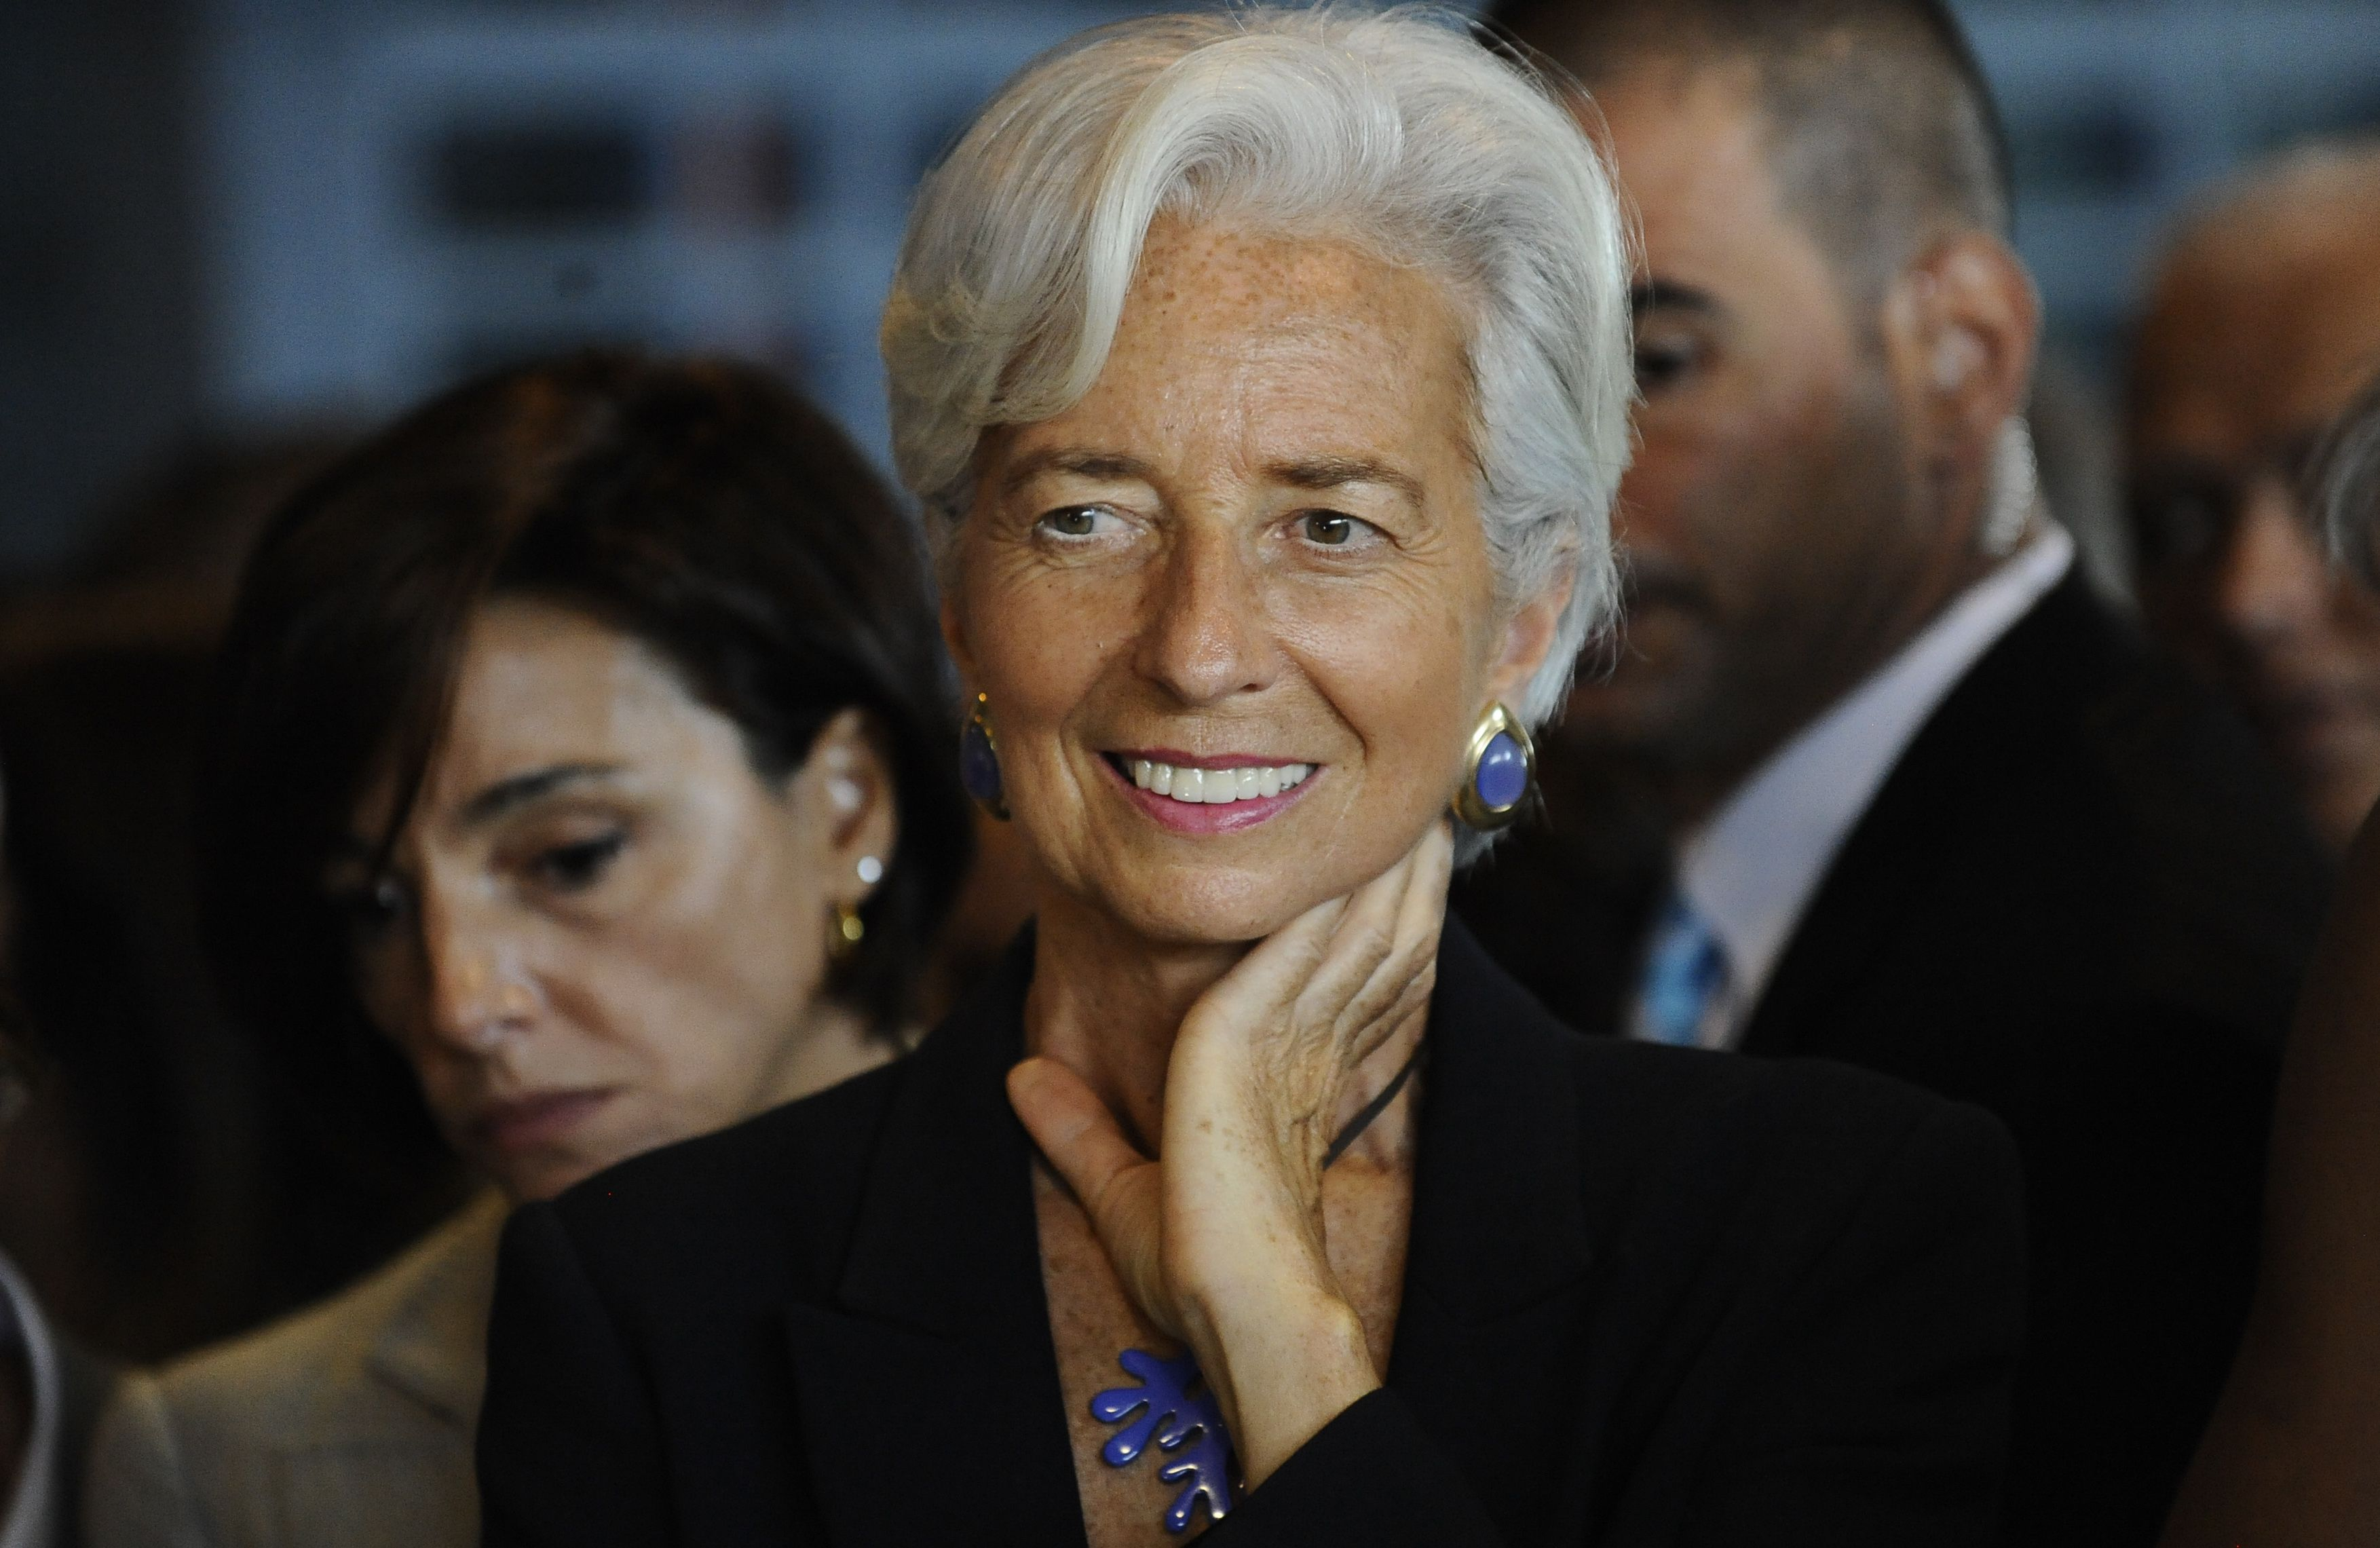 Lagarde has called for cryptocurrency regulation